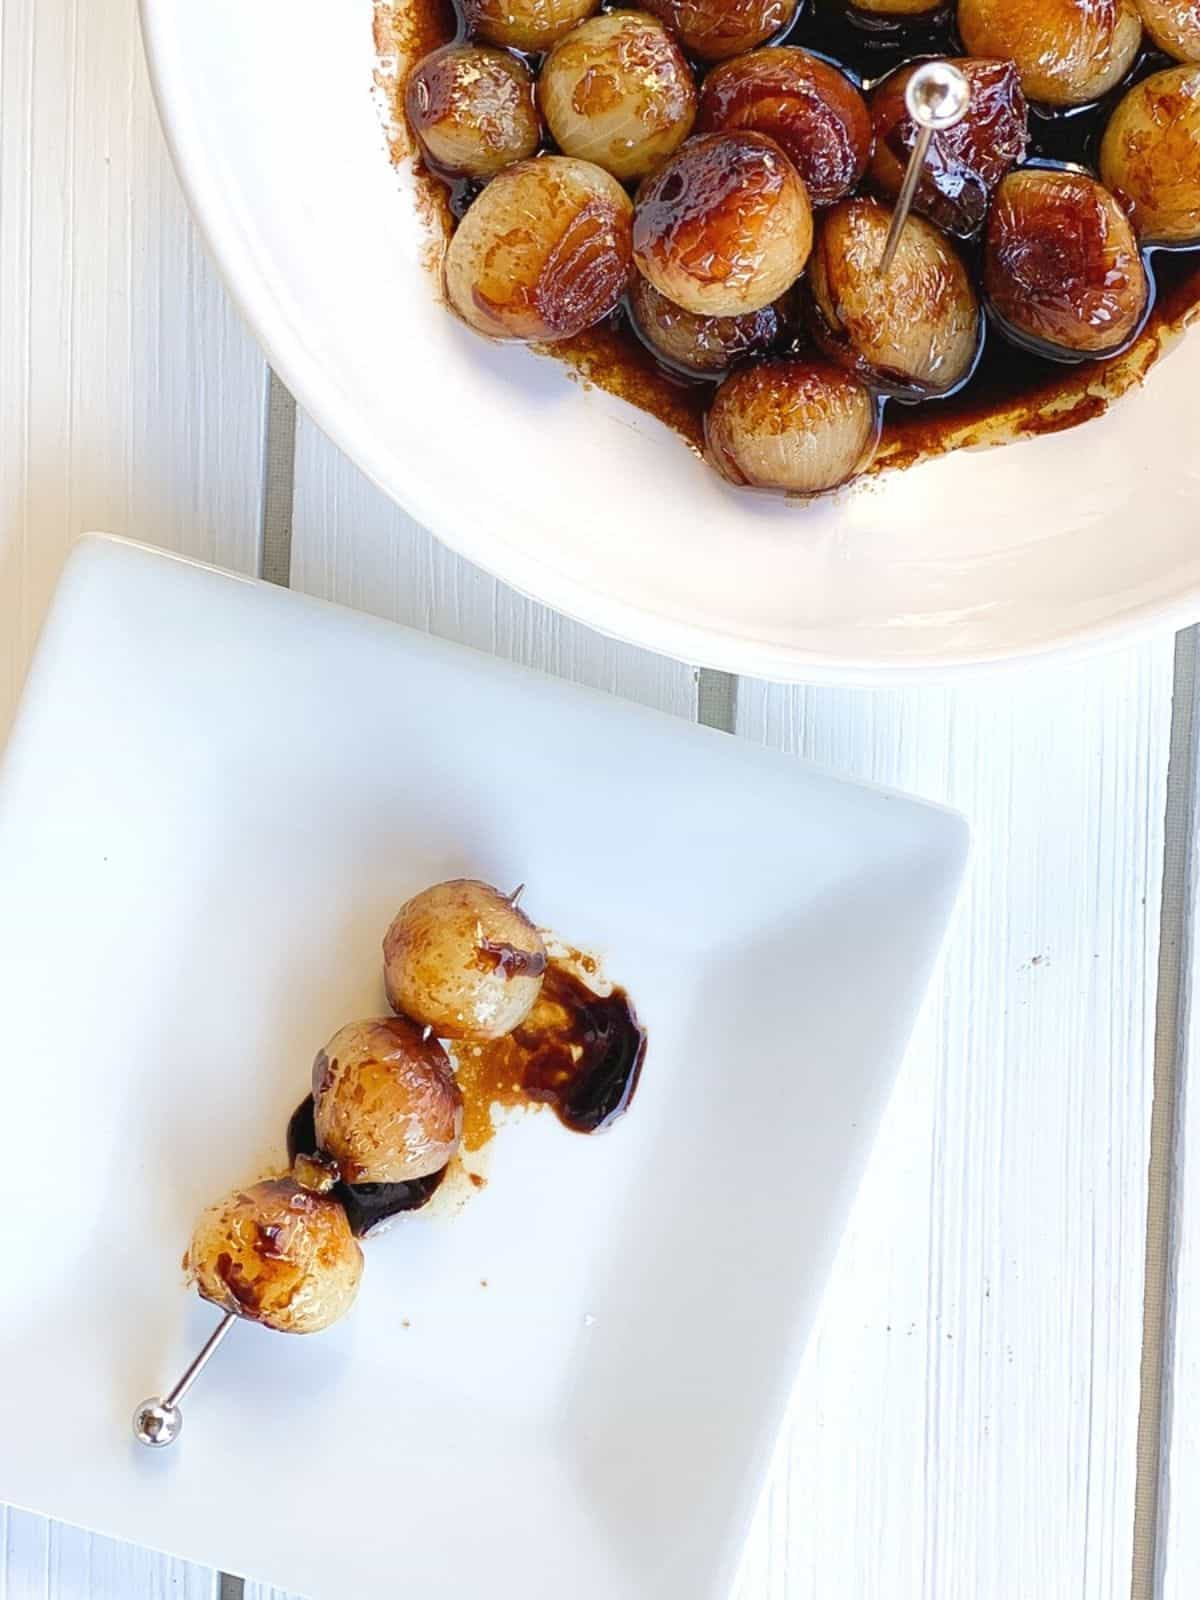 caramelized pearl onions on a plate with balsamic vinegar.